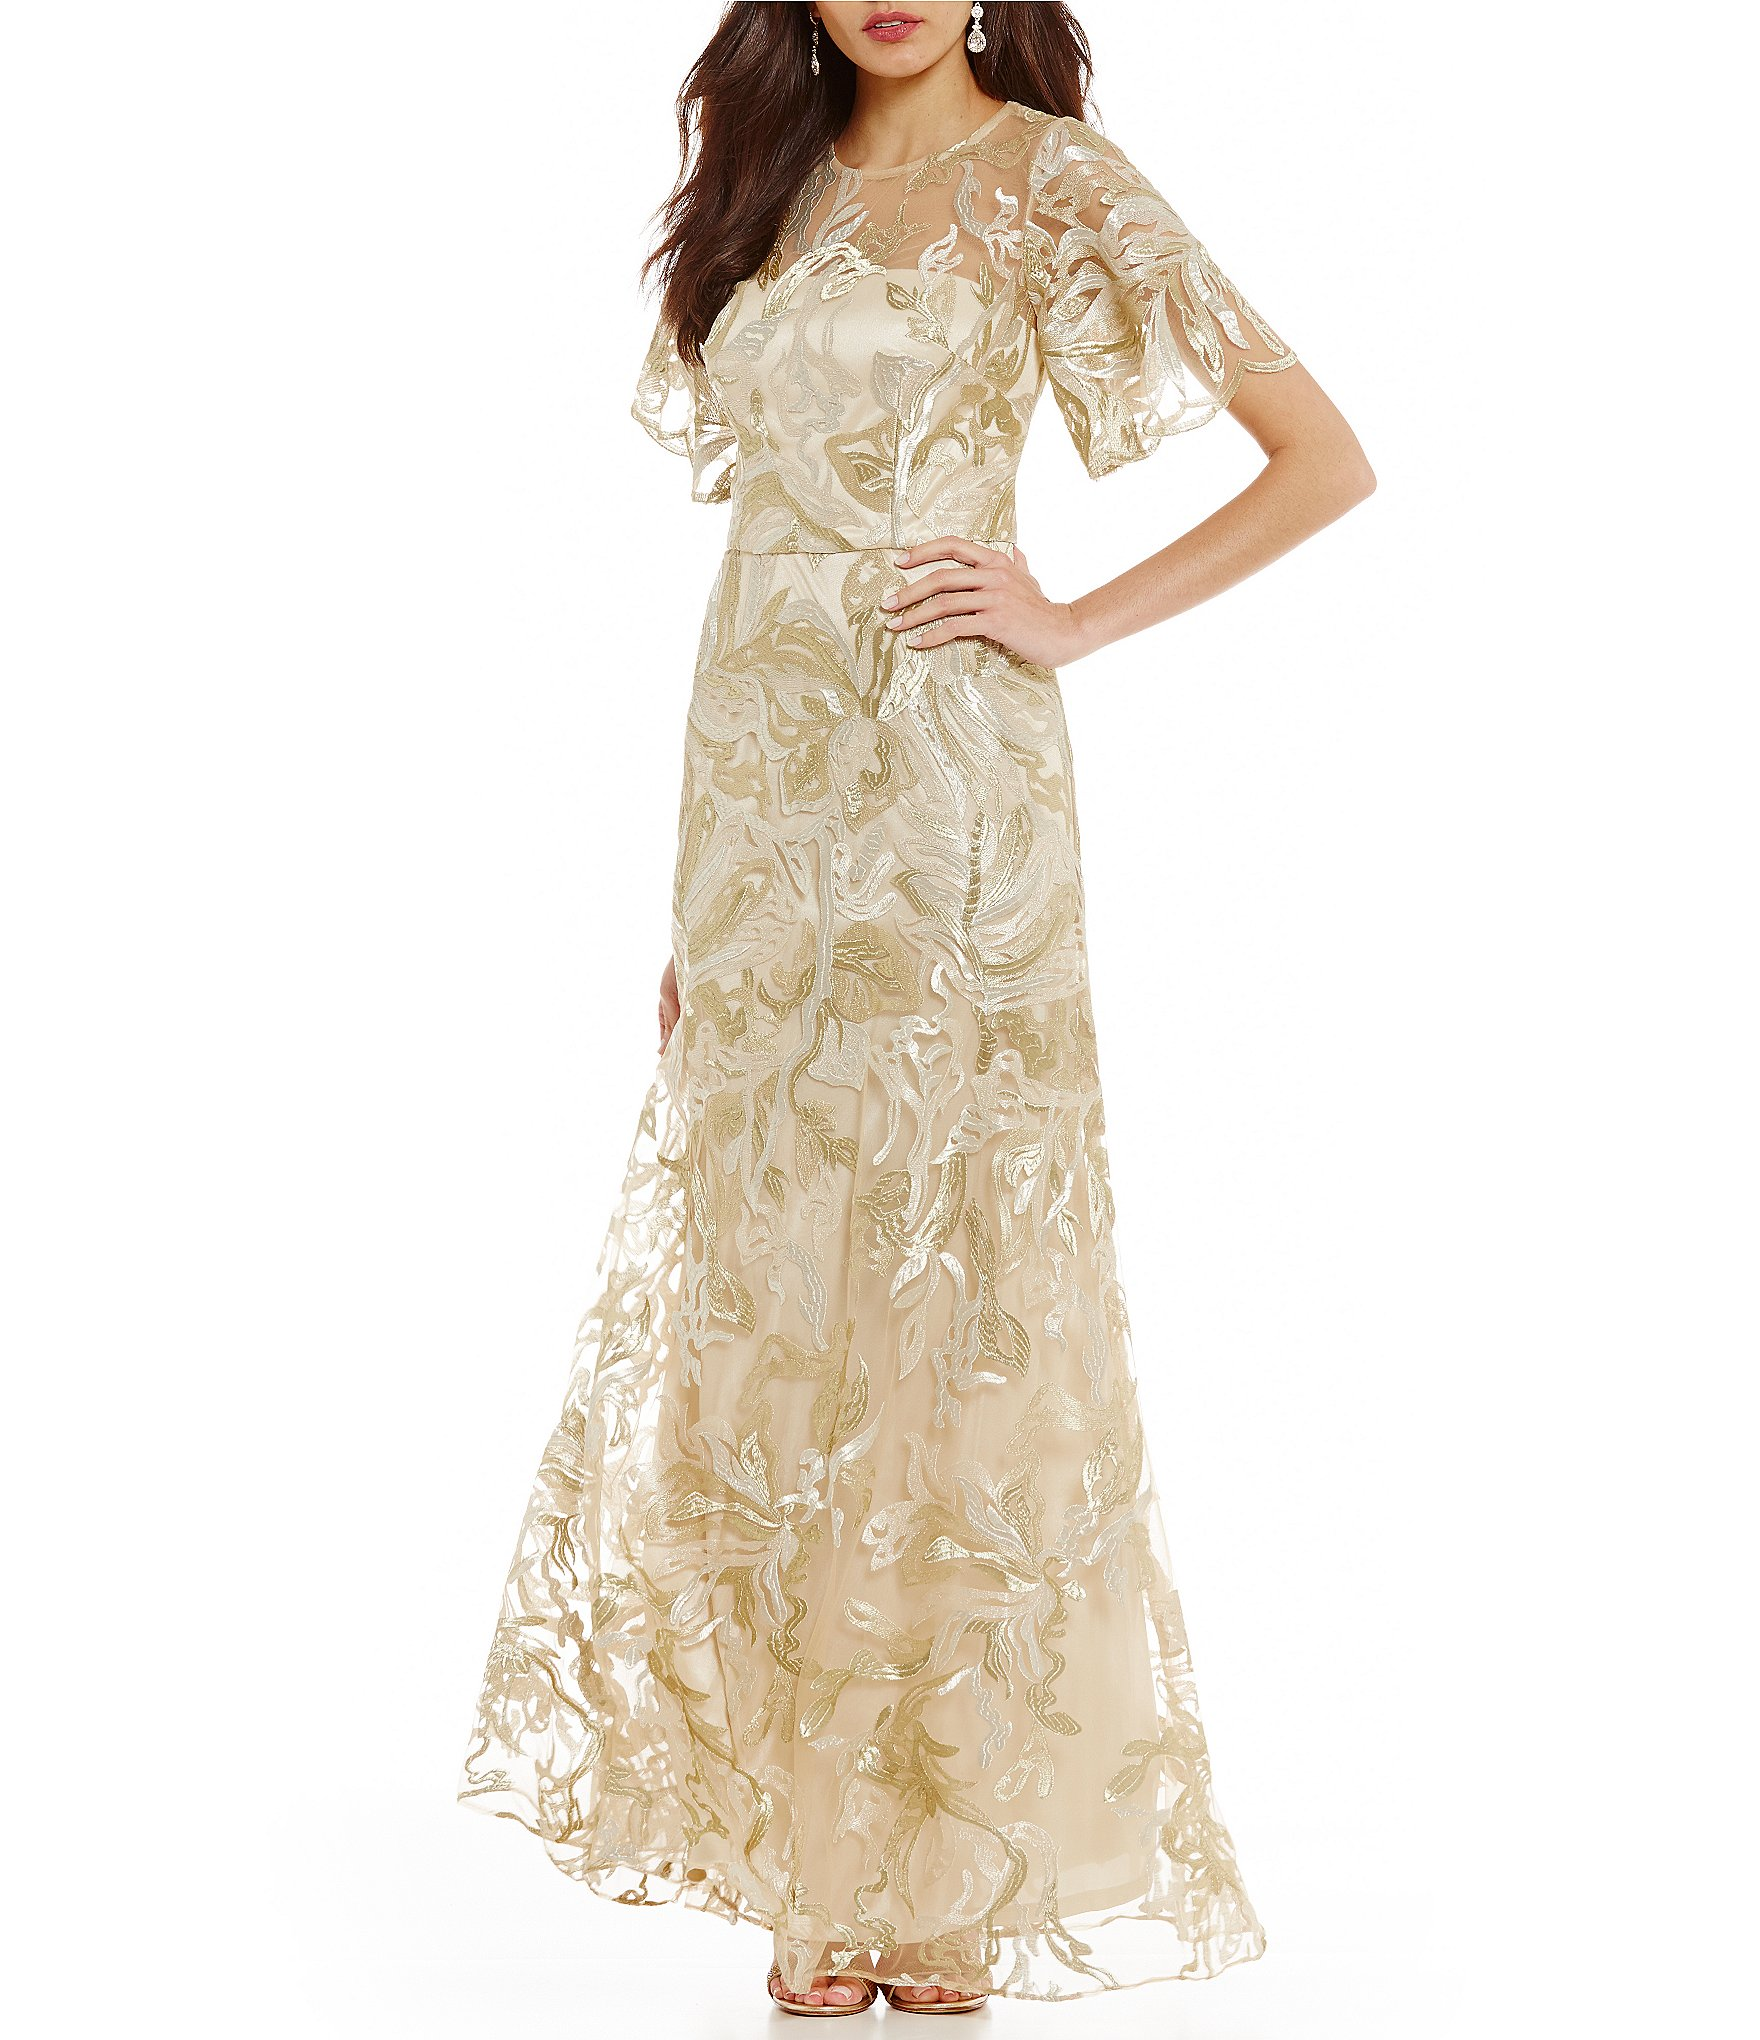 Buy like-new dresses, gowns, clothing, and accessories from thousands of designers and save off retail. Buy from clearance items and keep it forever.